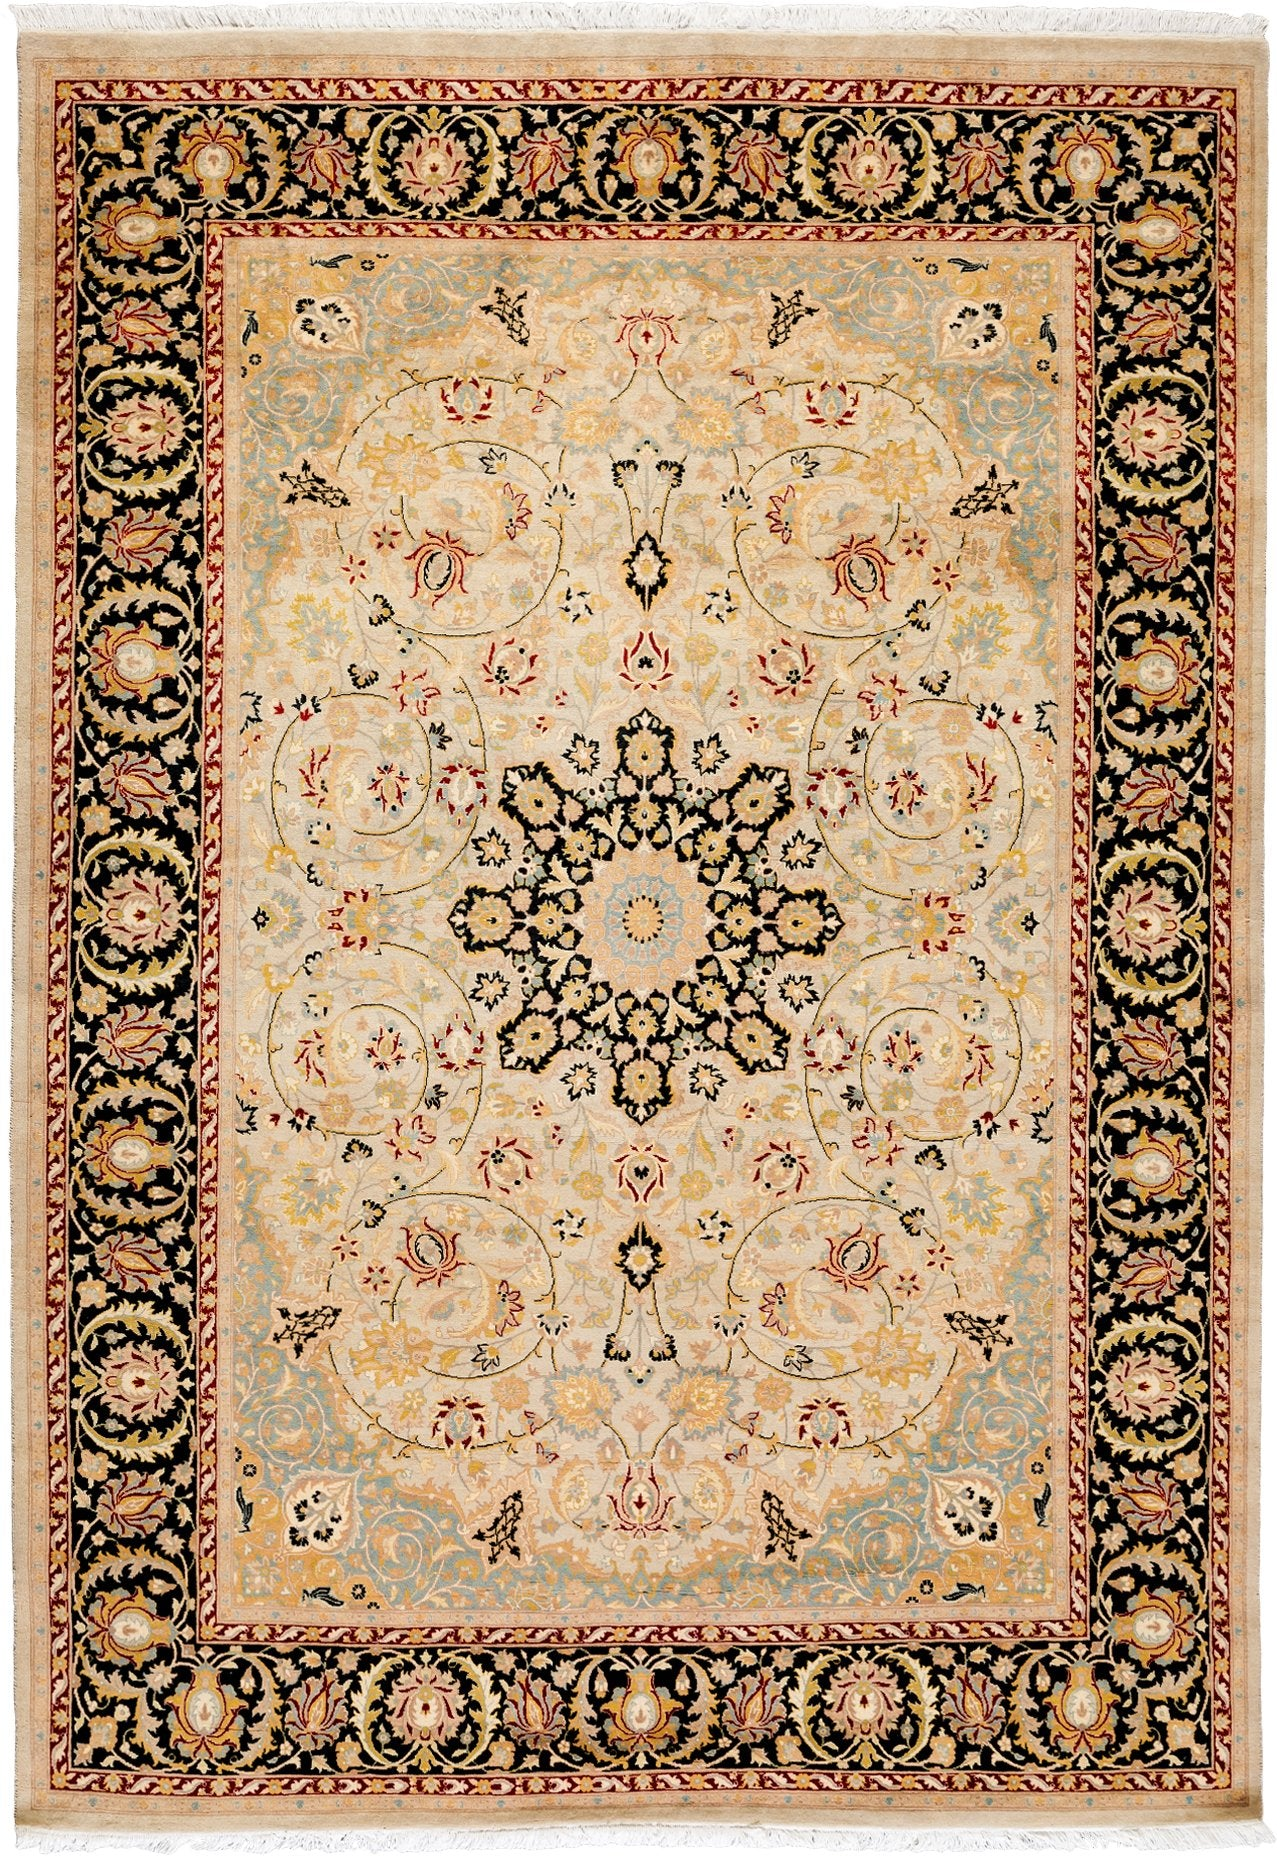 Classic Beige Wool Area Rug 6 2 X 8 10 Lillian August